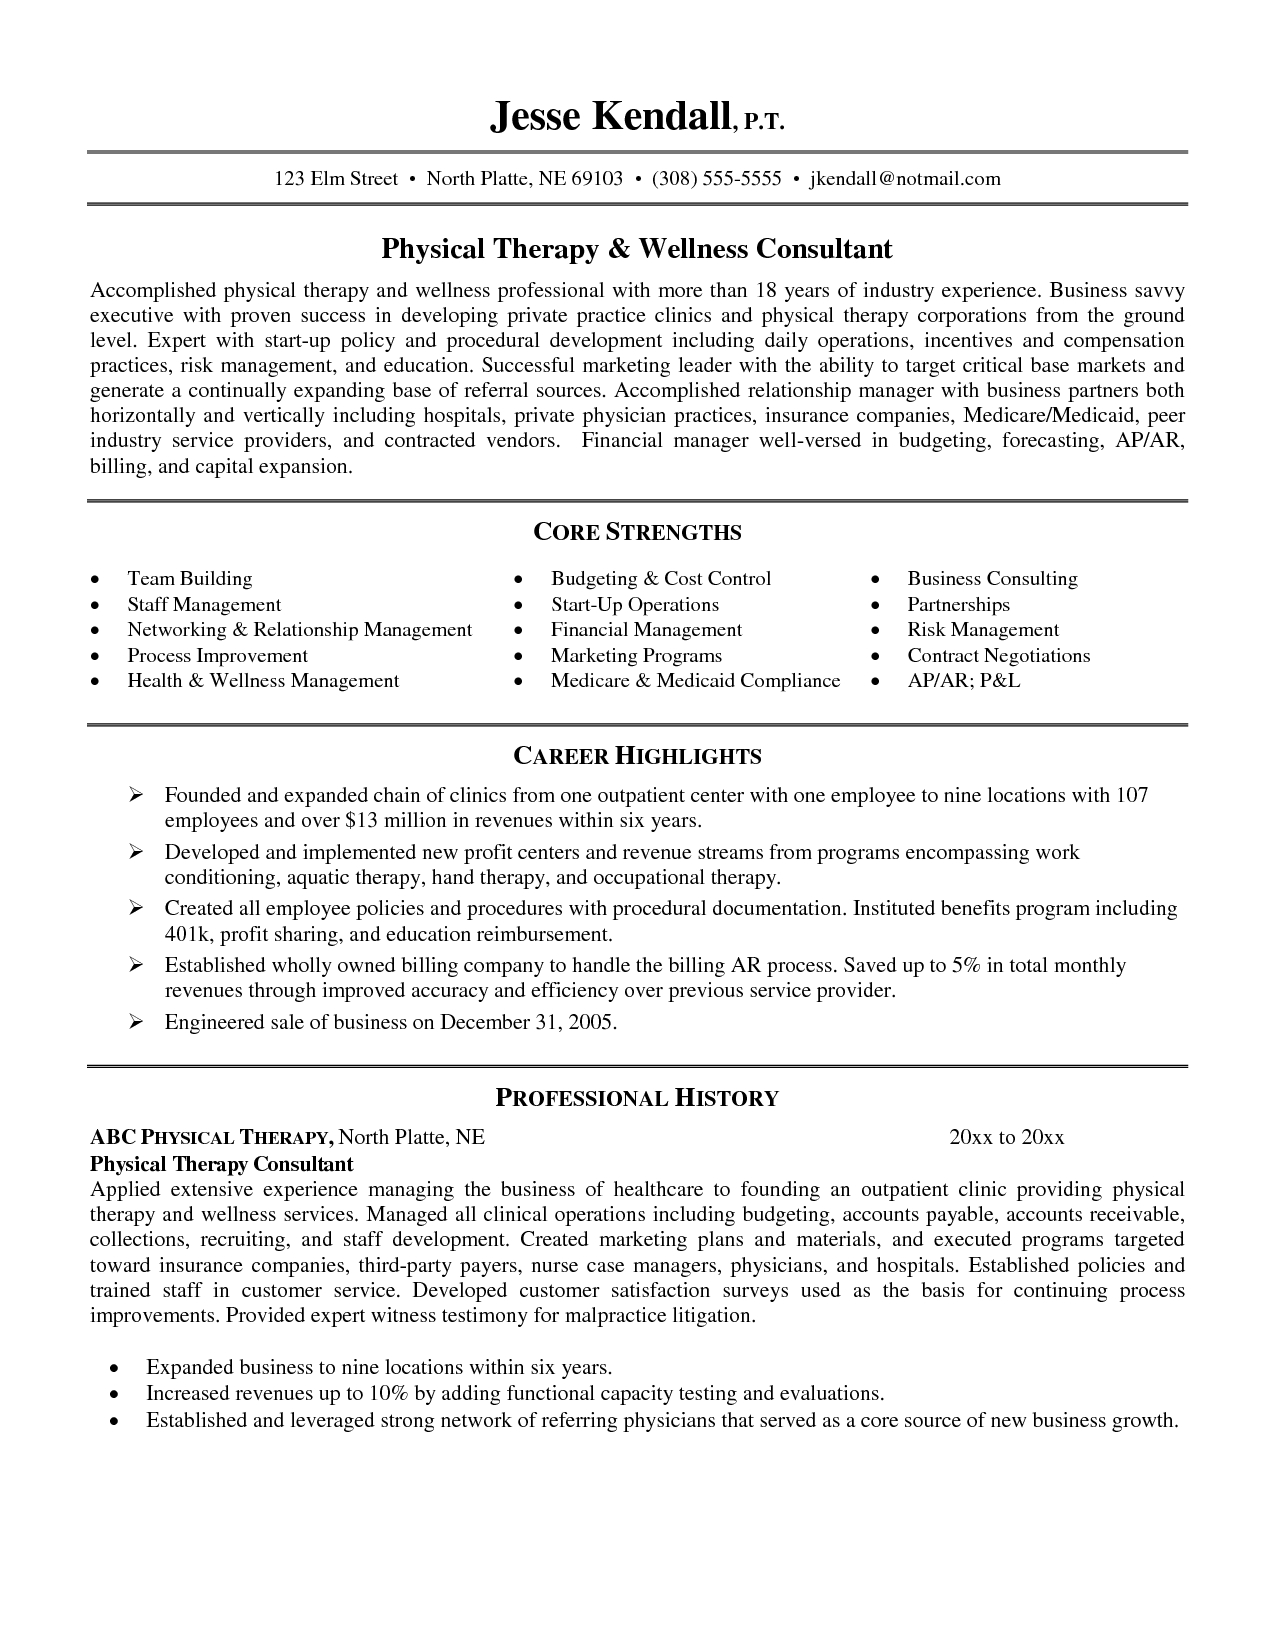 medical assistant job resume sample best online resume builder medical assistant job resume sample medical assistant job description monster assistant resume examples assistant physical therapist